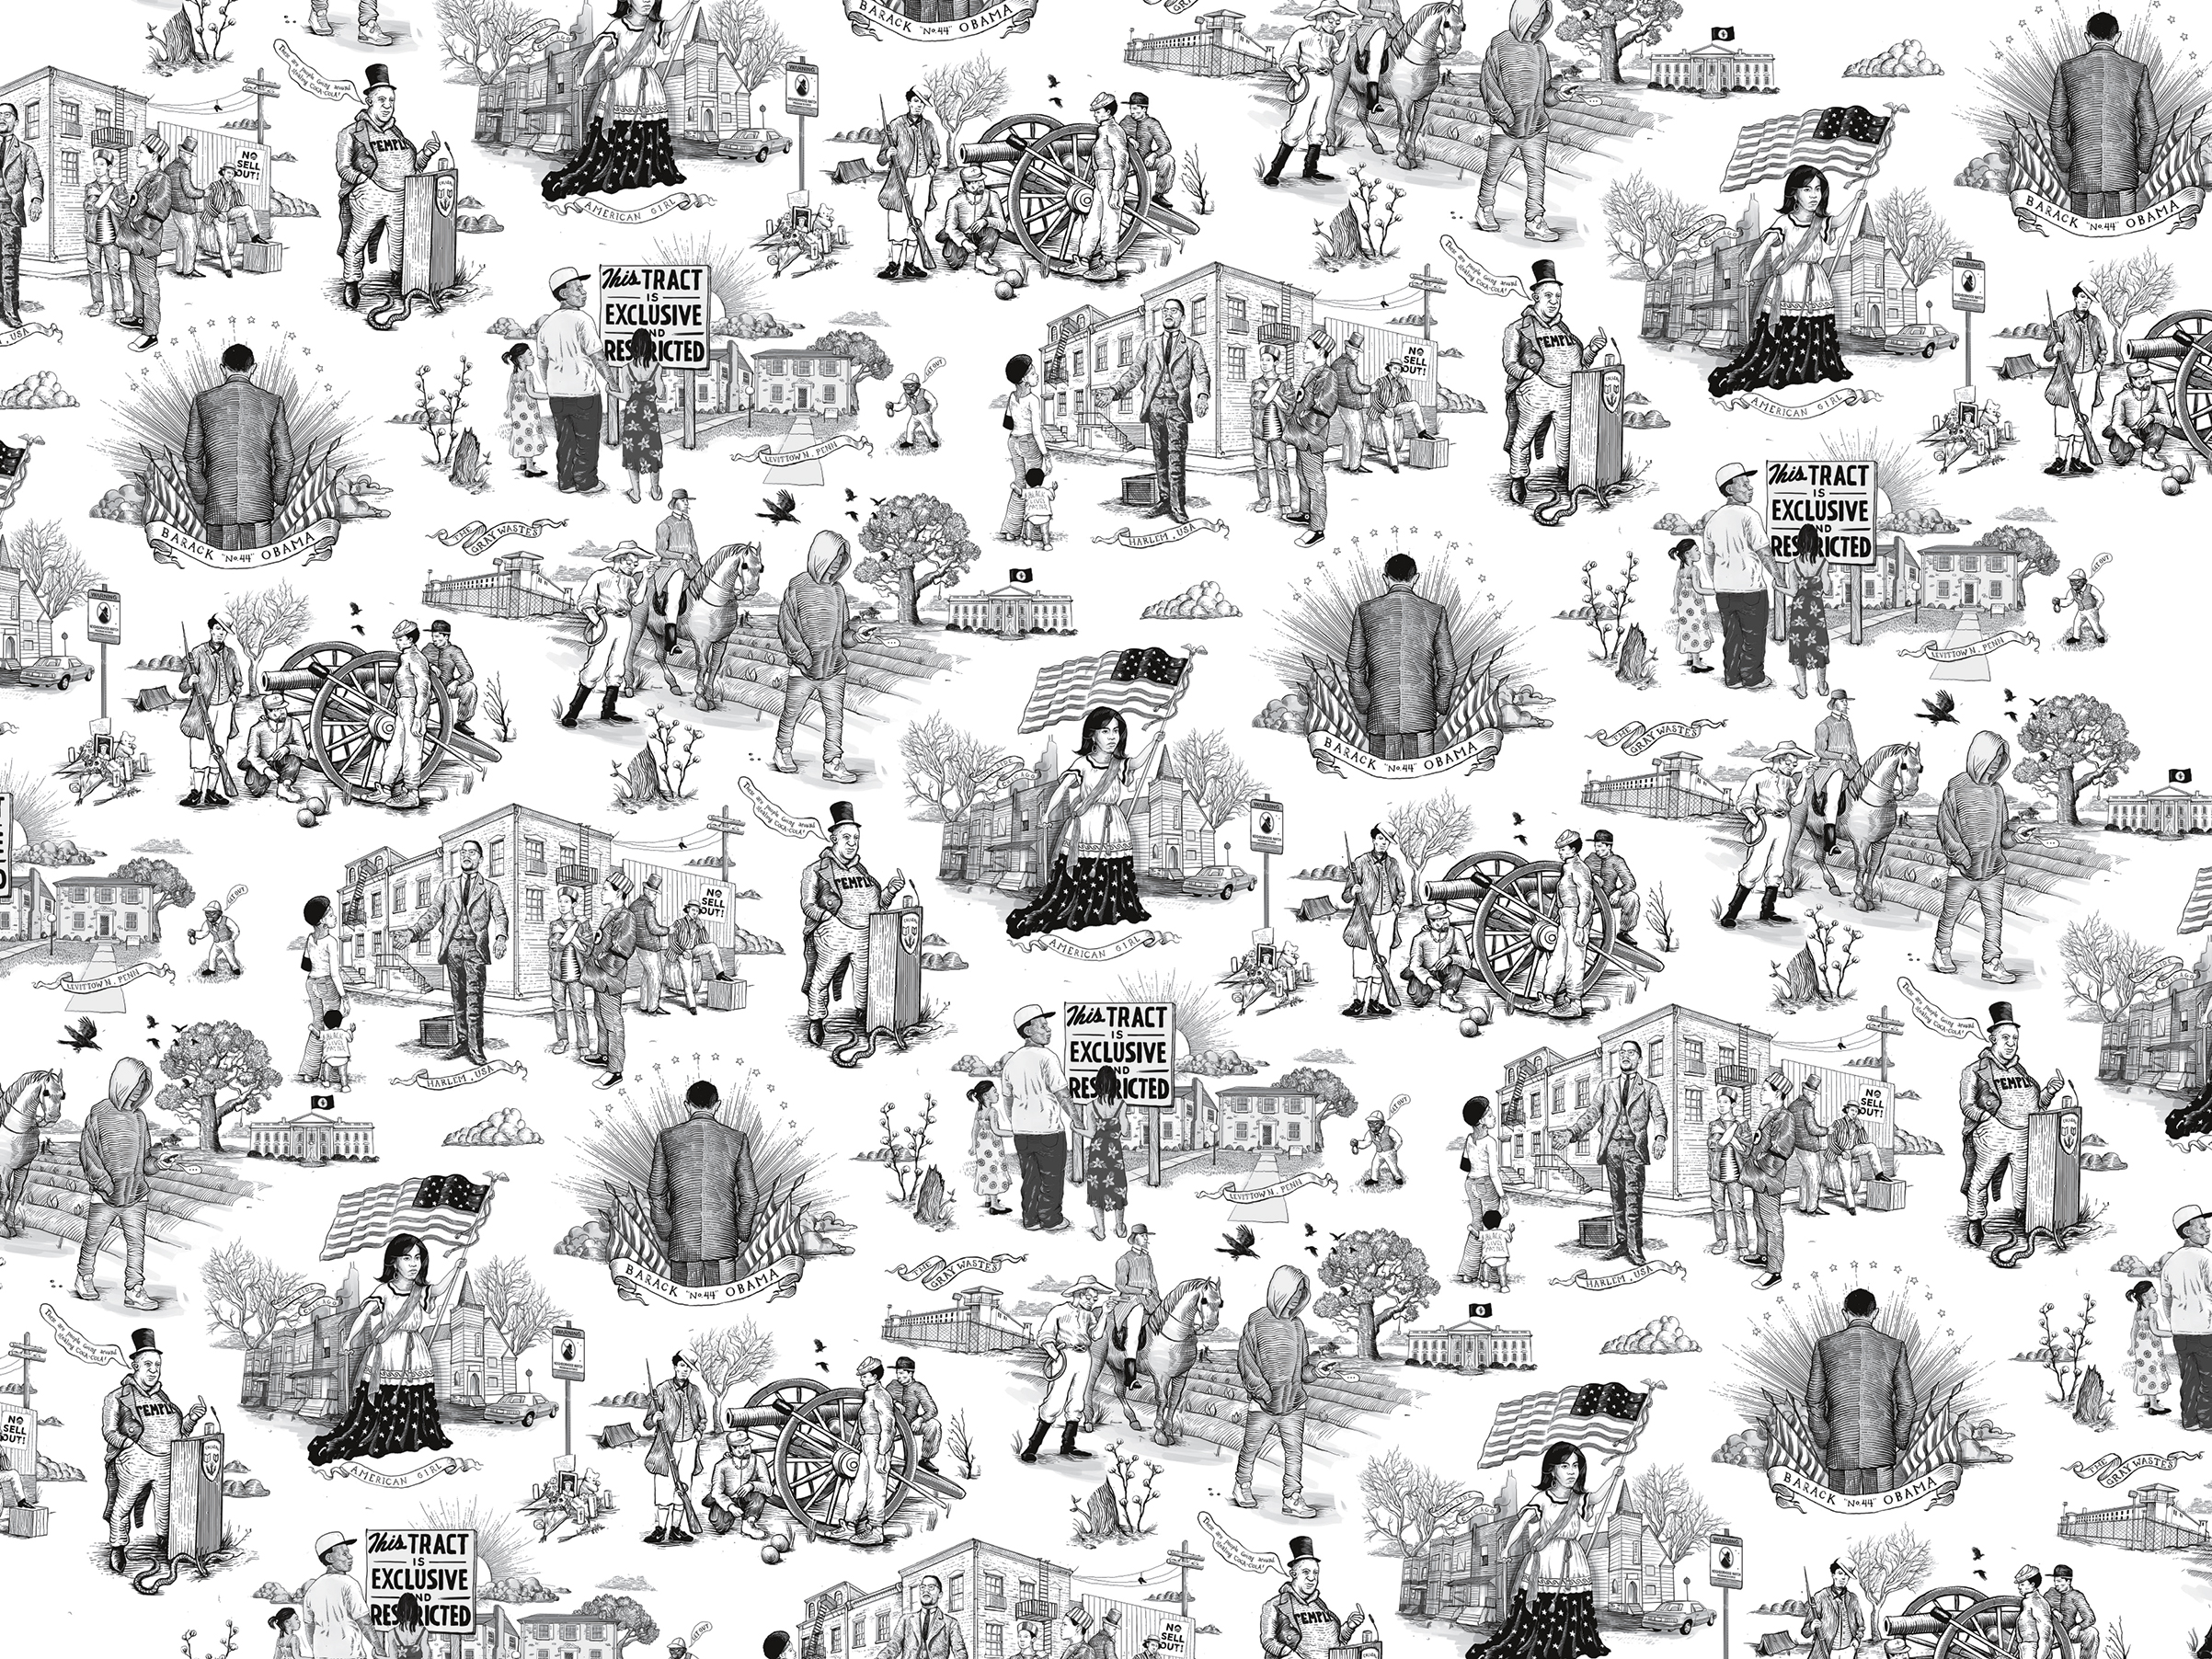 Illustrations on the book's endpapers represent each of Coates' essays